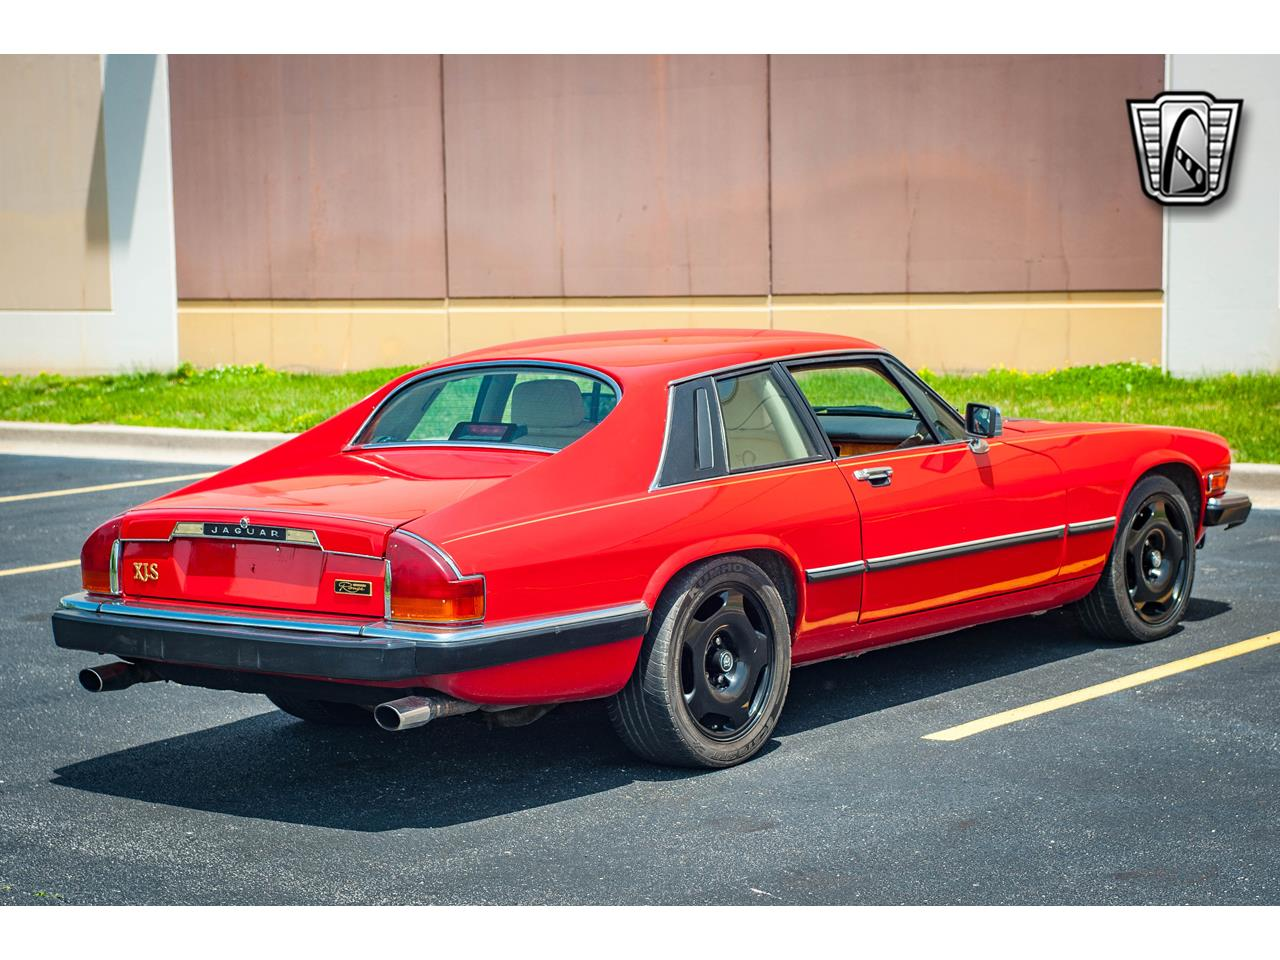 Large Picture of 1989 Jaguar XJS located in Illinois - $20,000.00 Offered by Gateway Classic Cars - St. Louis - QB9L